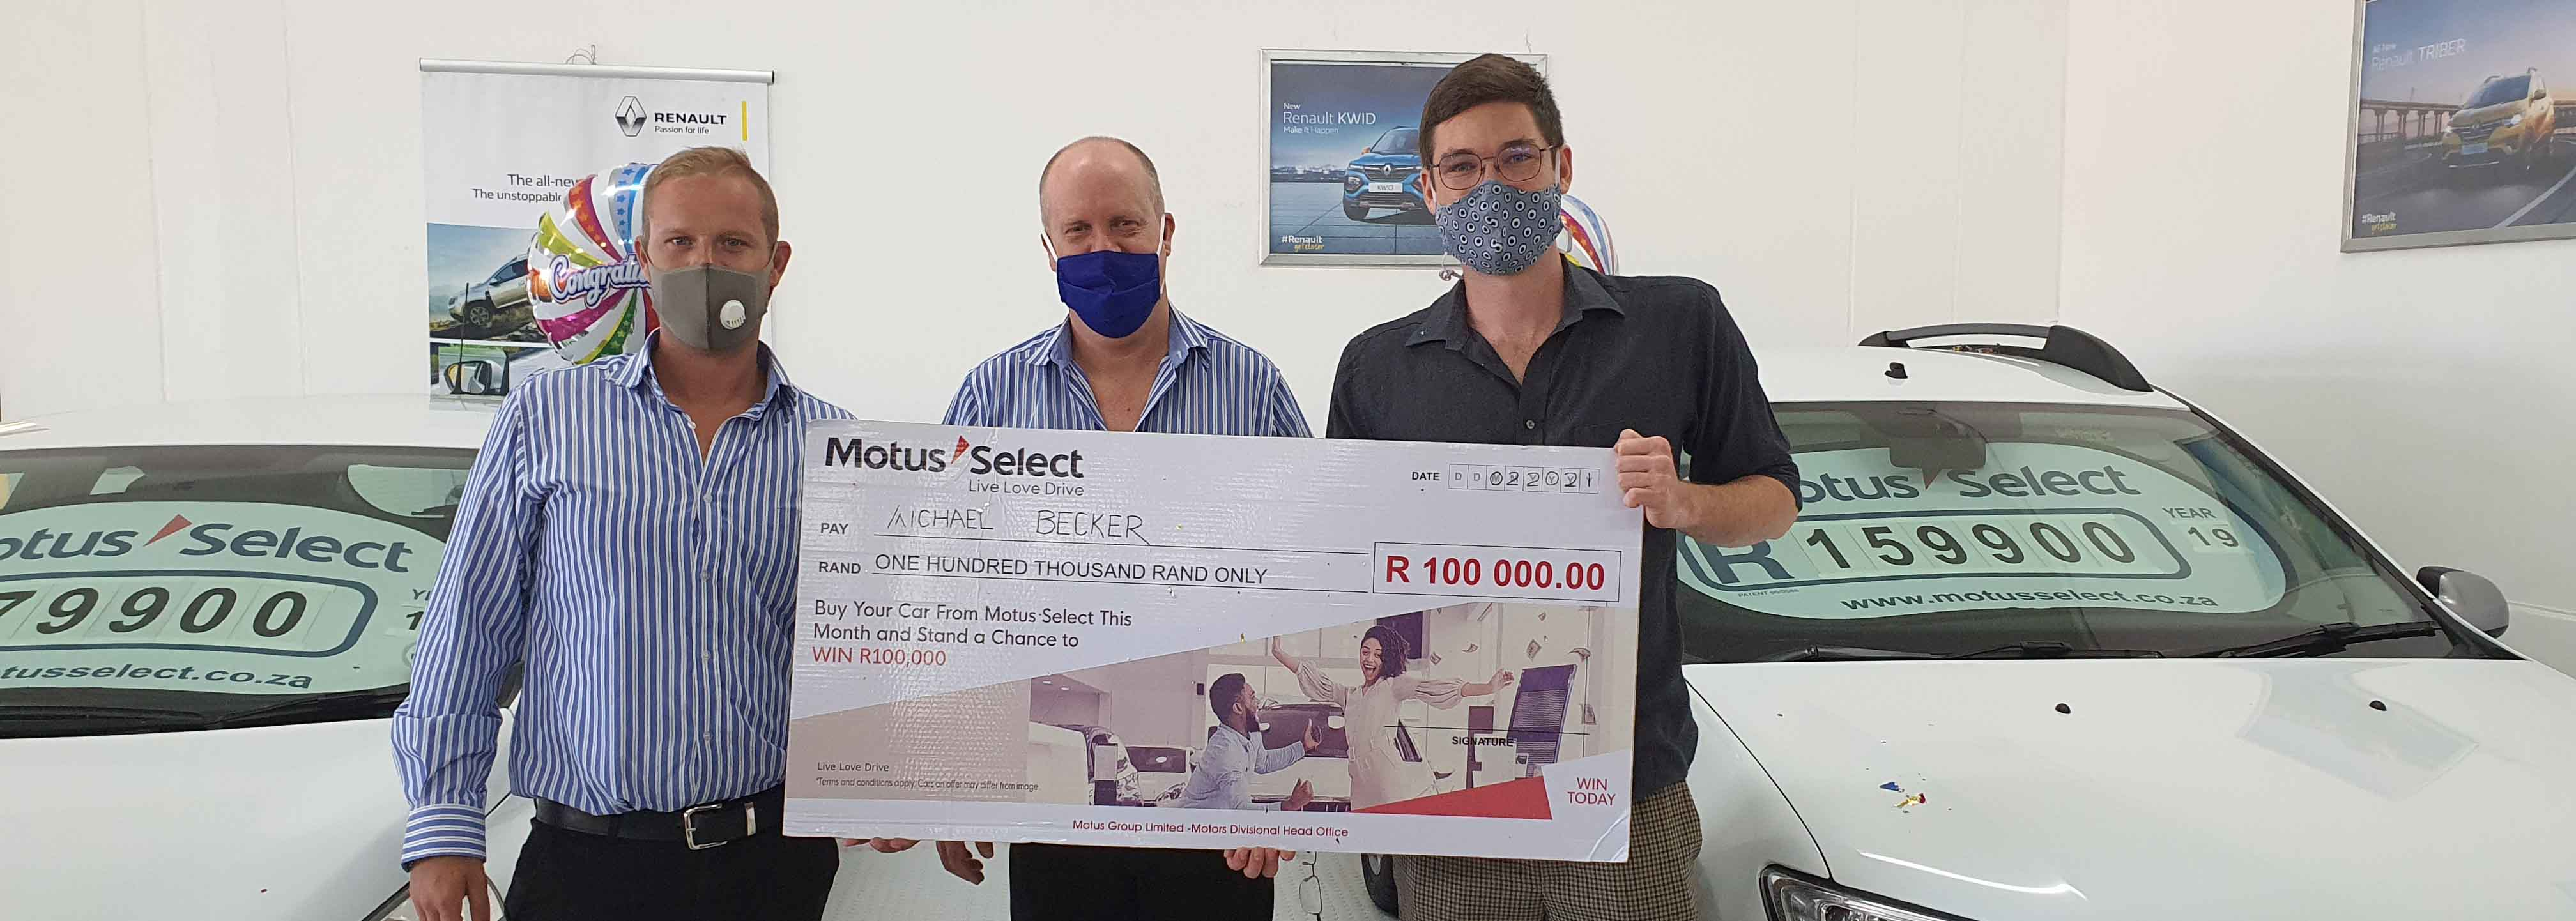 Motus Select awards second shopper with R100 000 prize